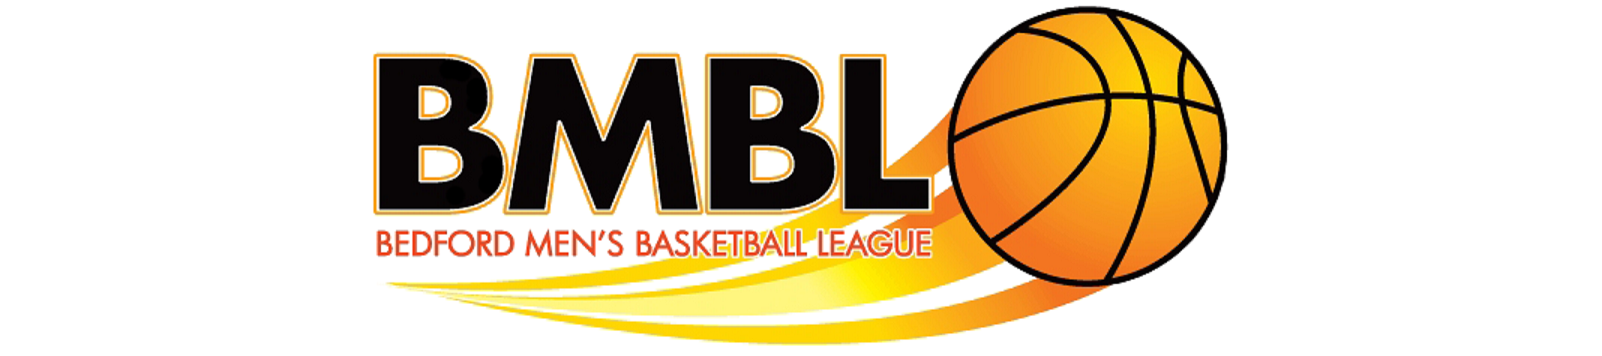 Bedford Mens Over 30 Basketball League, Basketball, Point, Court